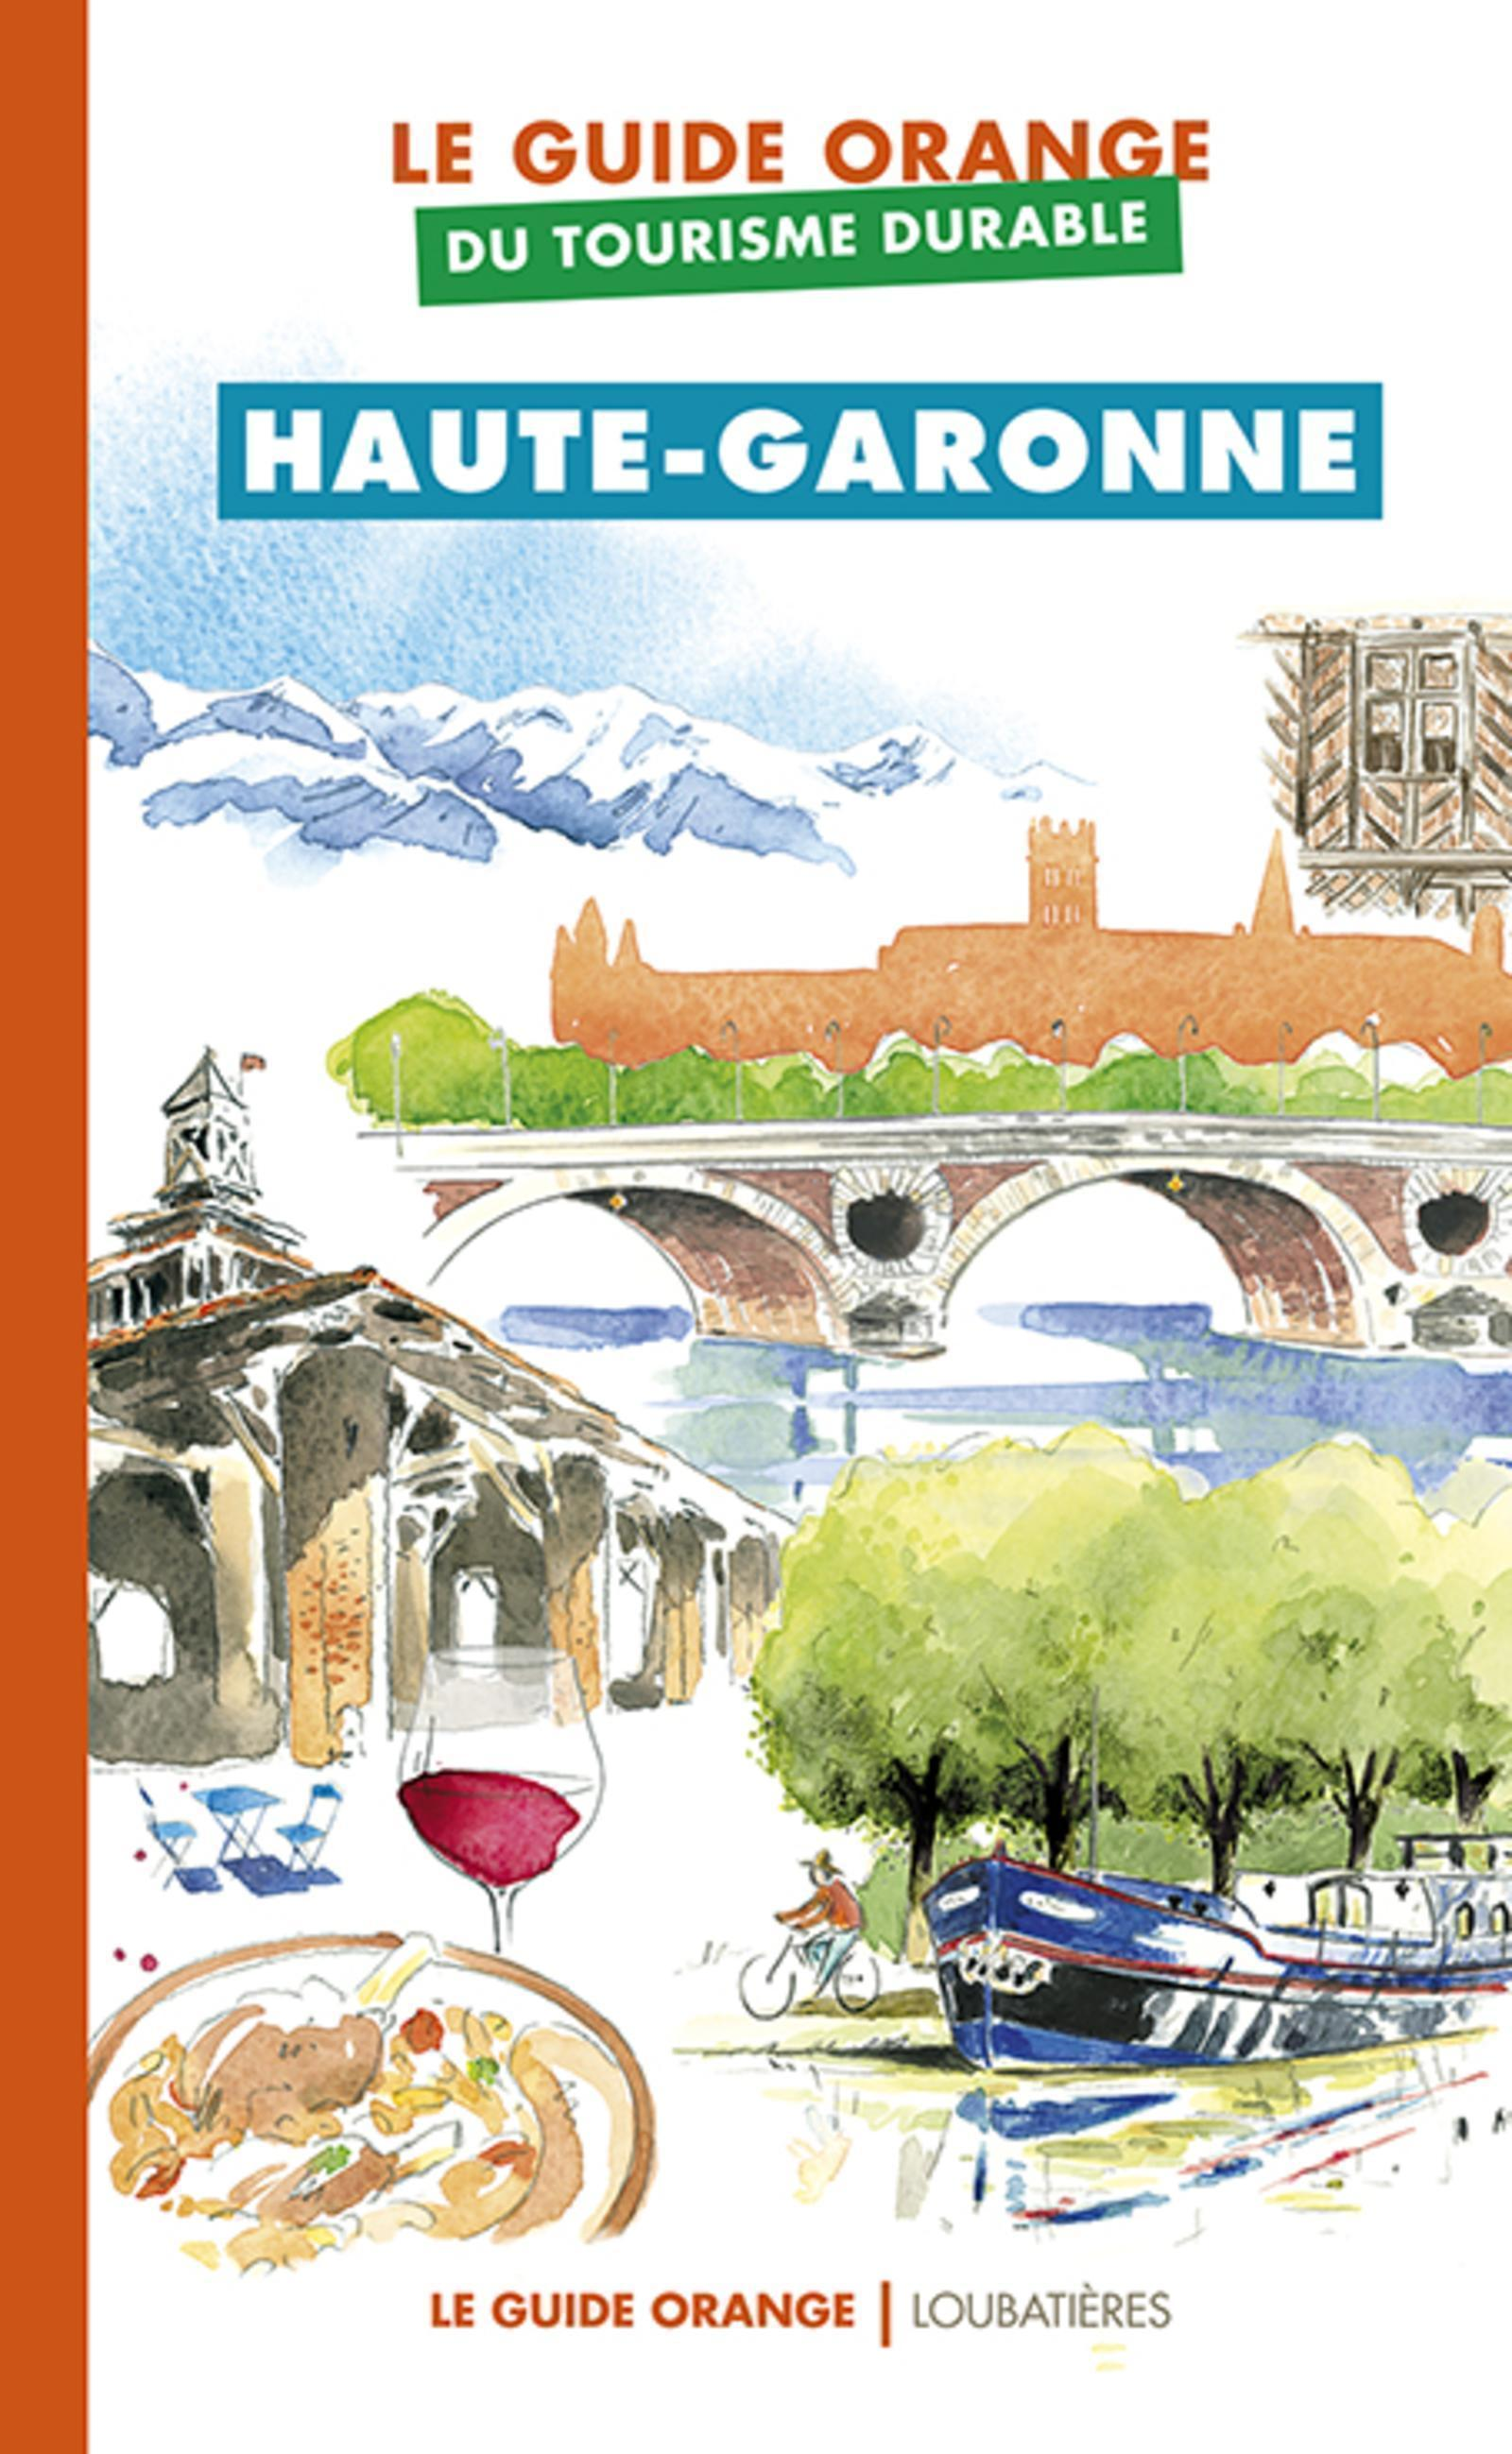 LE GUIDE ORANGE DU TOURISME DURABLE HAUTE GARONNE